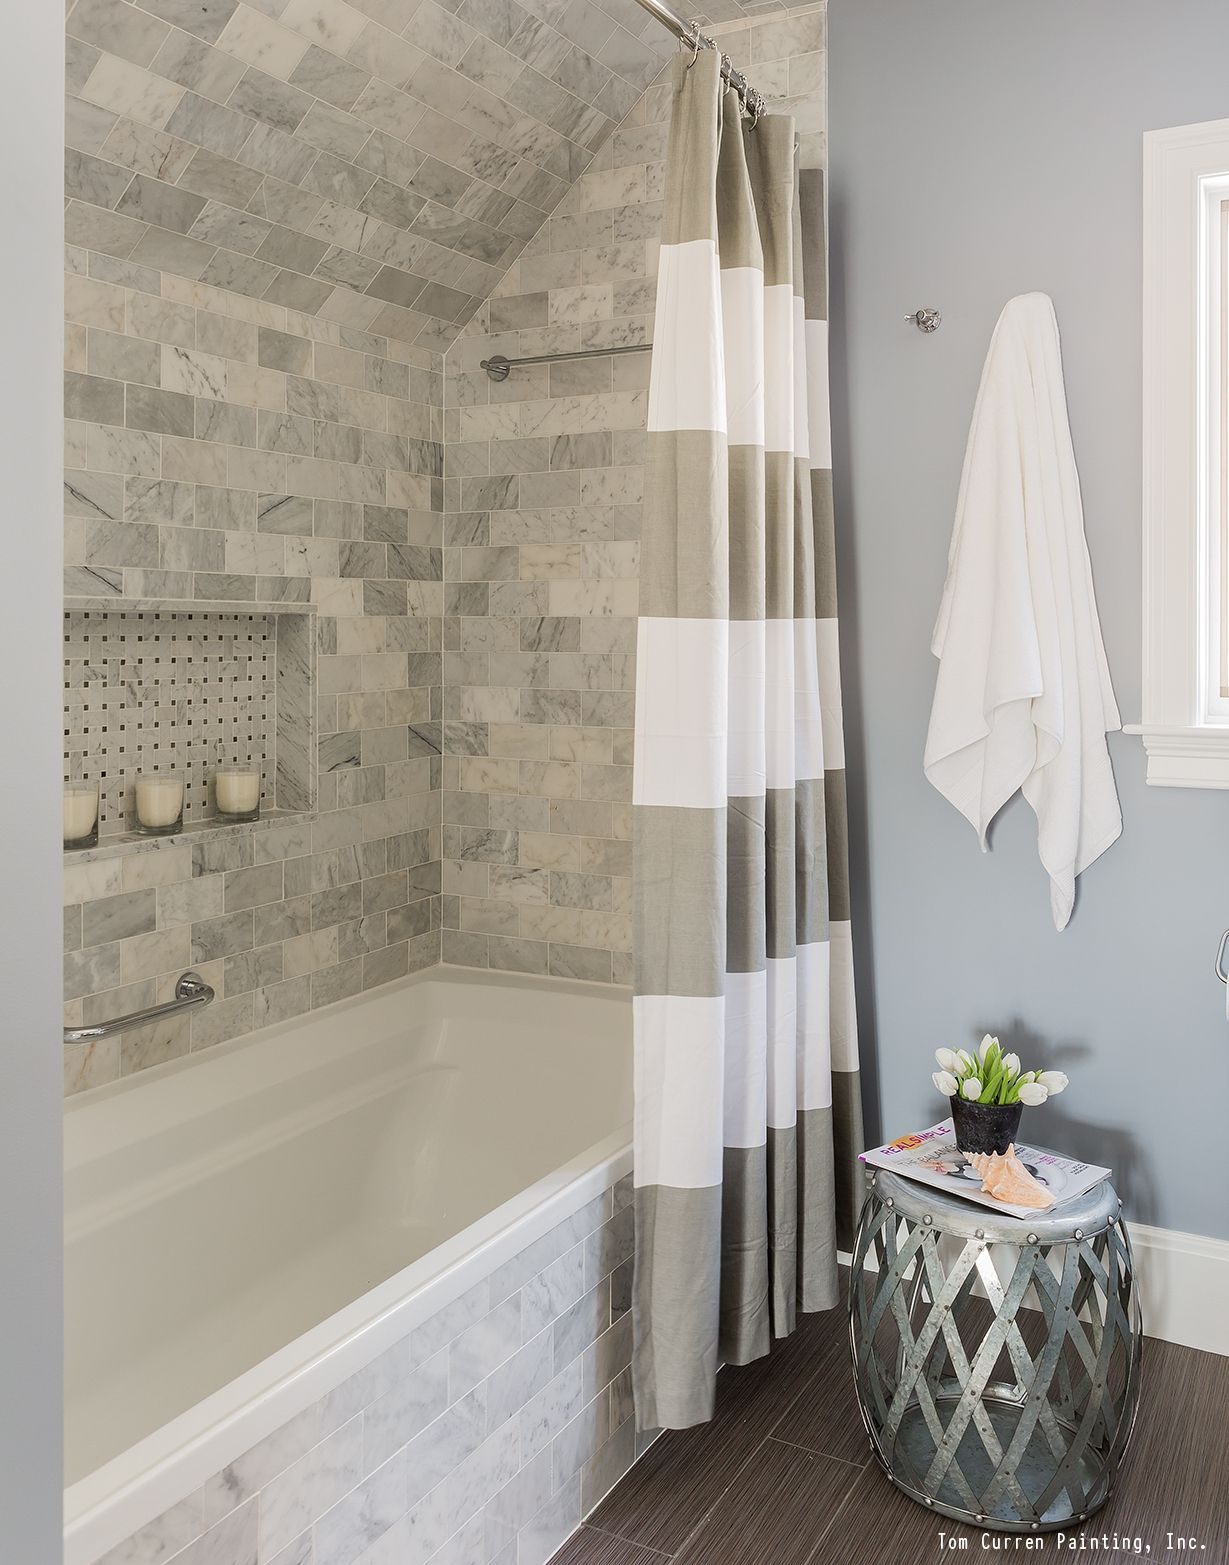 Image Gallery Website A gorgeous bathroom remodel with a tile shower white trim and a fresh coat of